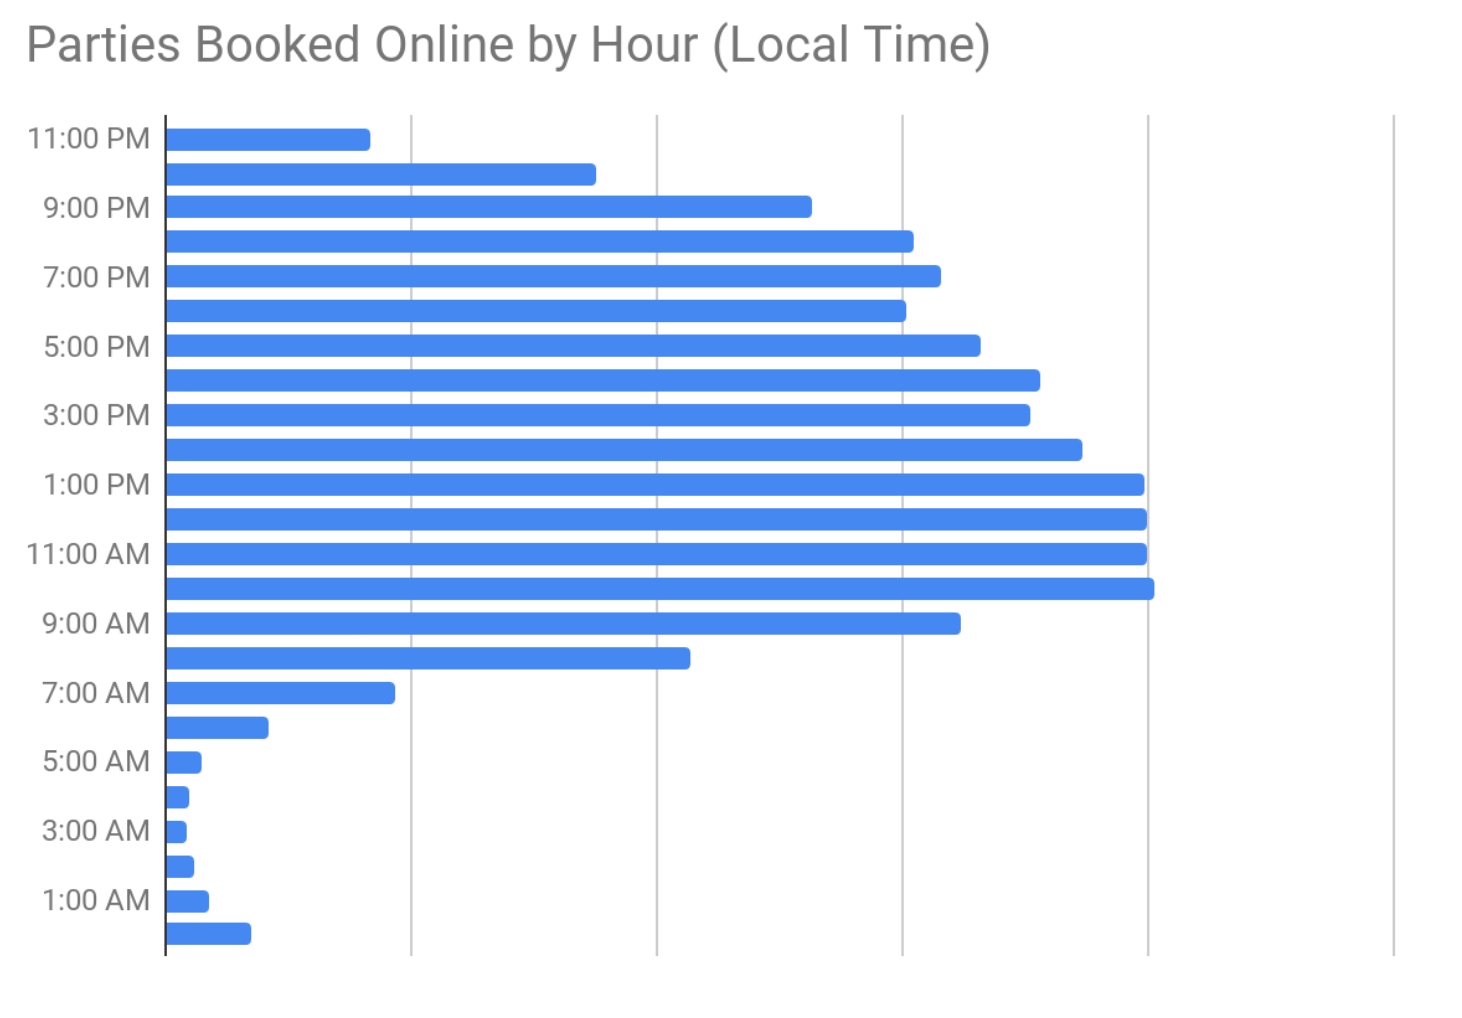 Parties booked by hour on PCS